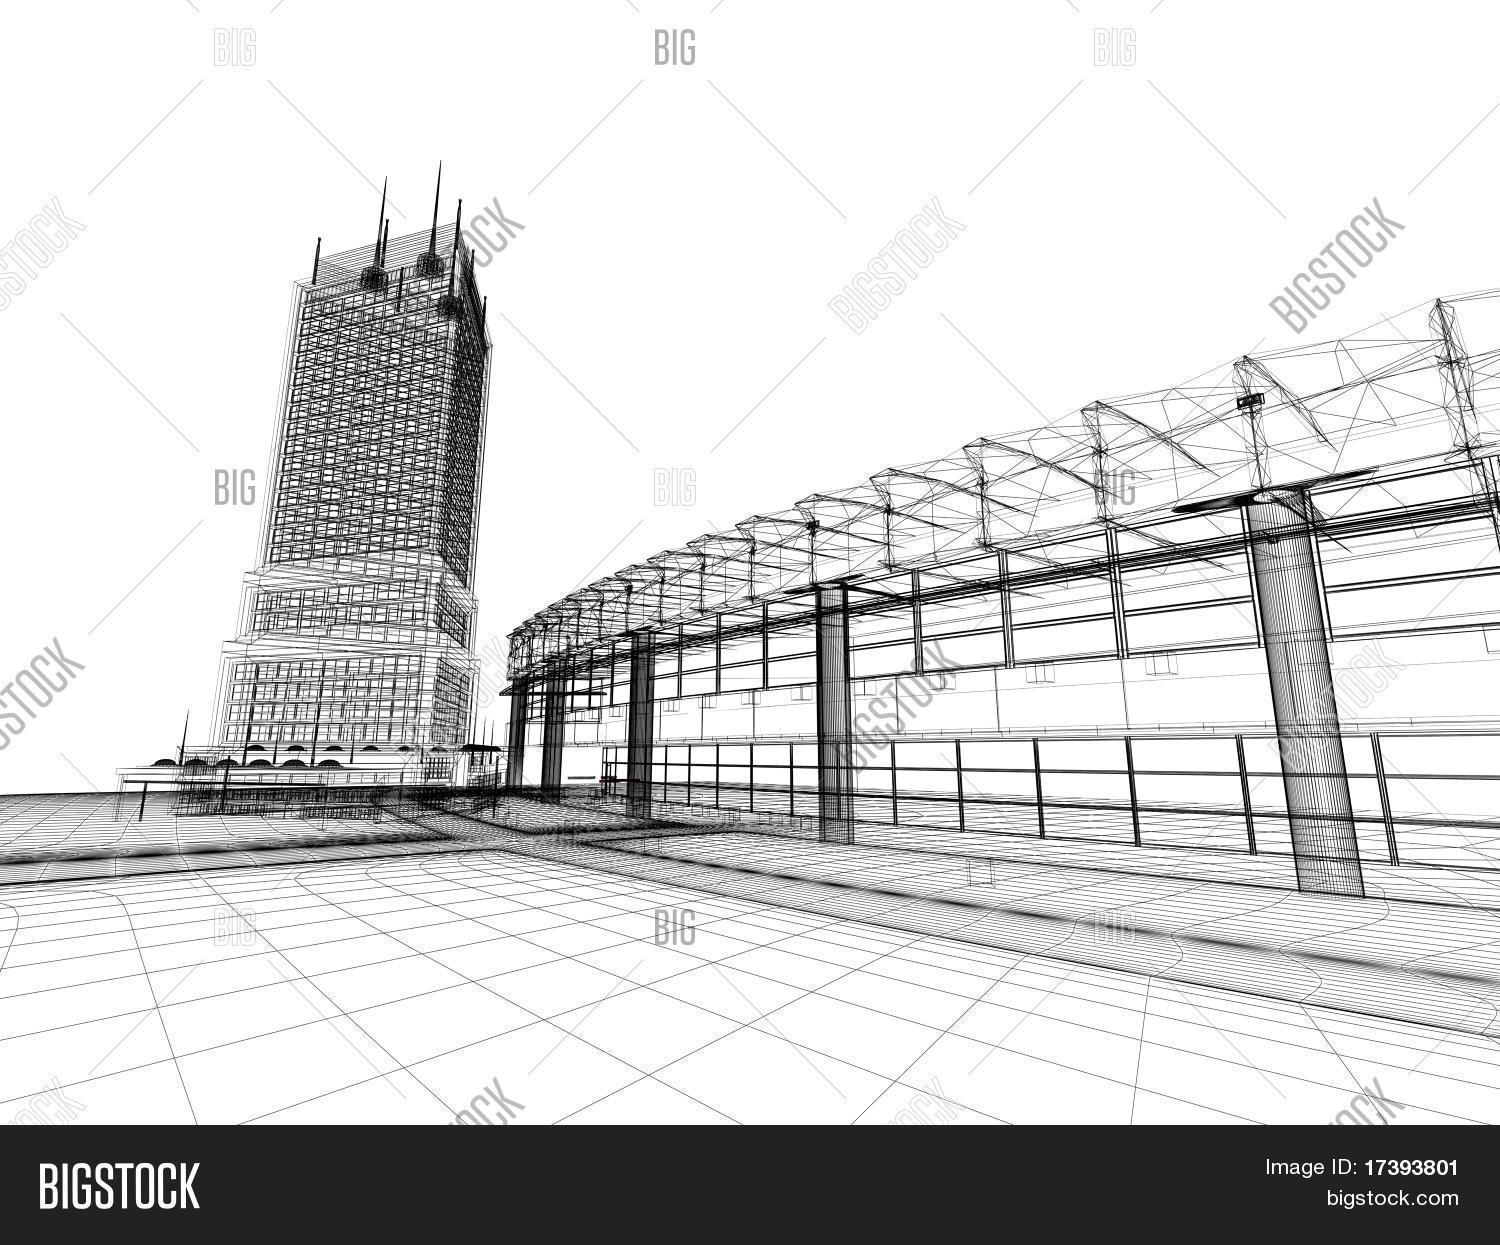 Graphic Image Building Image & Photo (Free Trial) | Bigstock